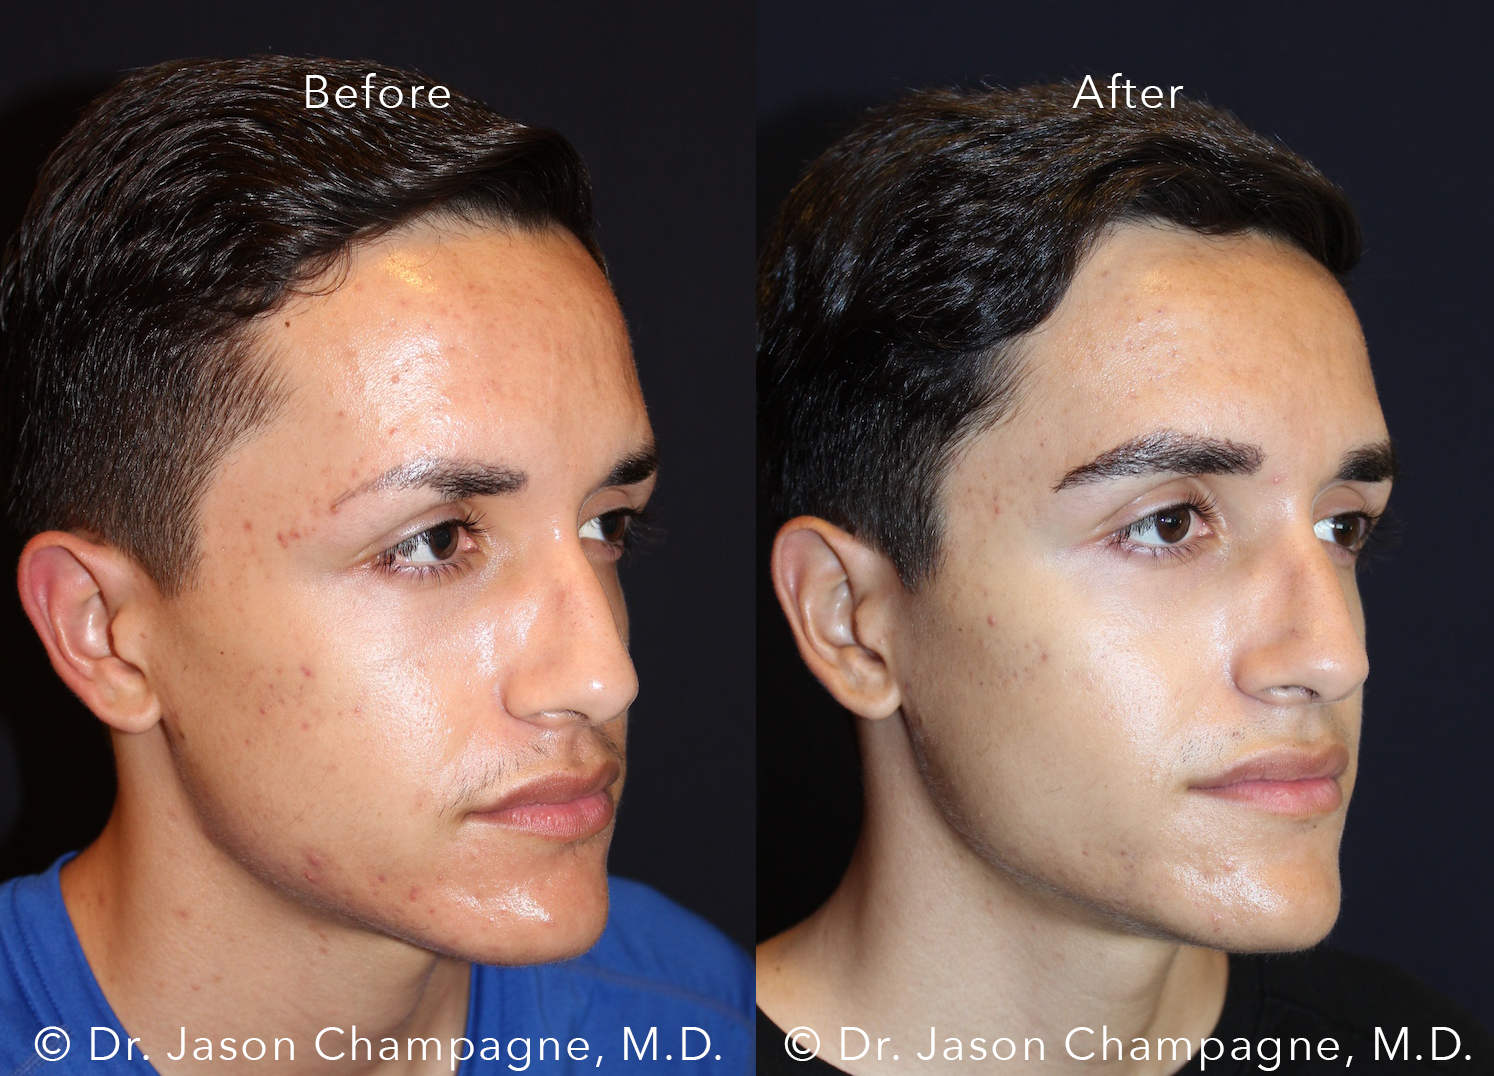 Dr-Jason-Champagne-Male-Eyebrow-Hair-Transplant-Before-and-After-Right-3/4